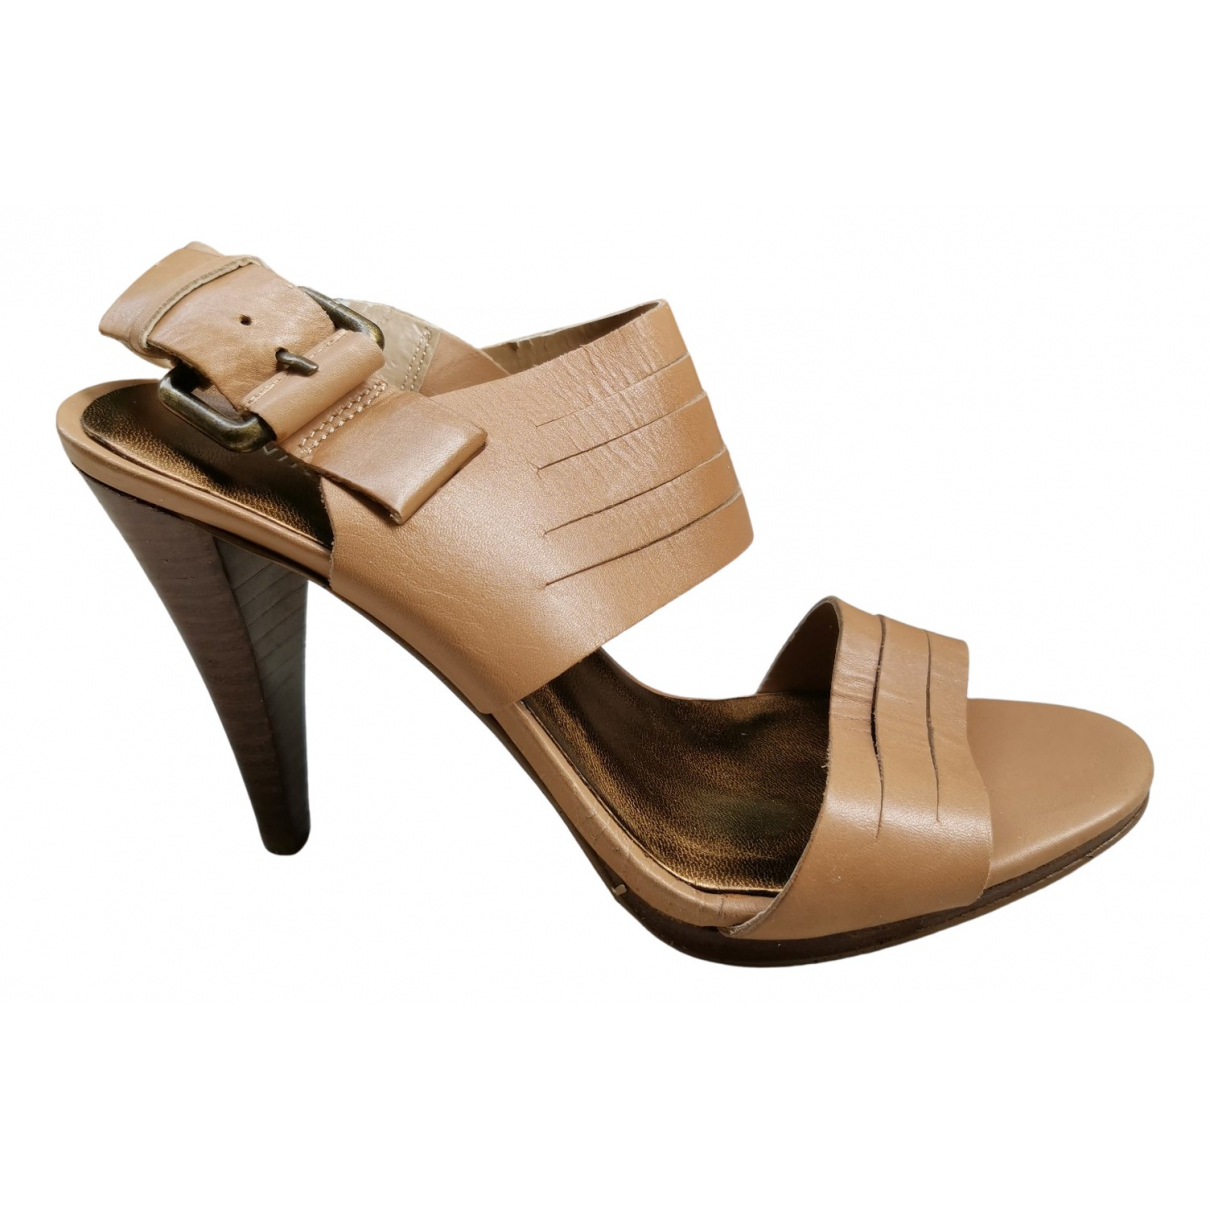 Nine West N Beige Leather Sandals for Women 6 US